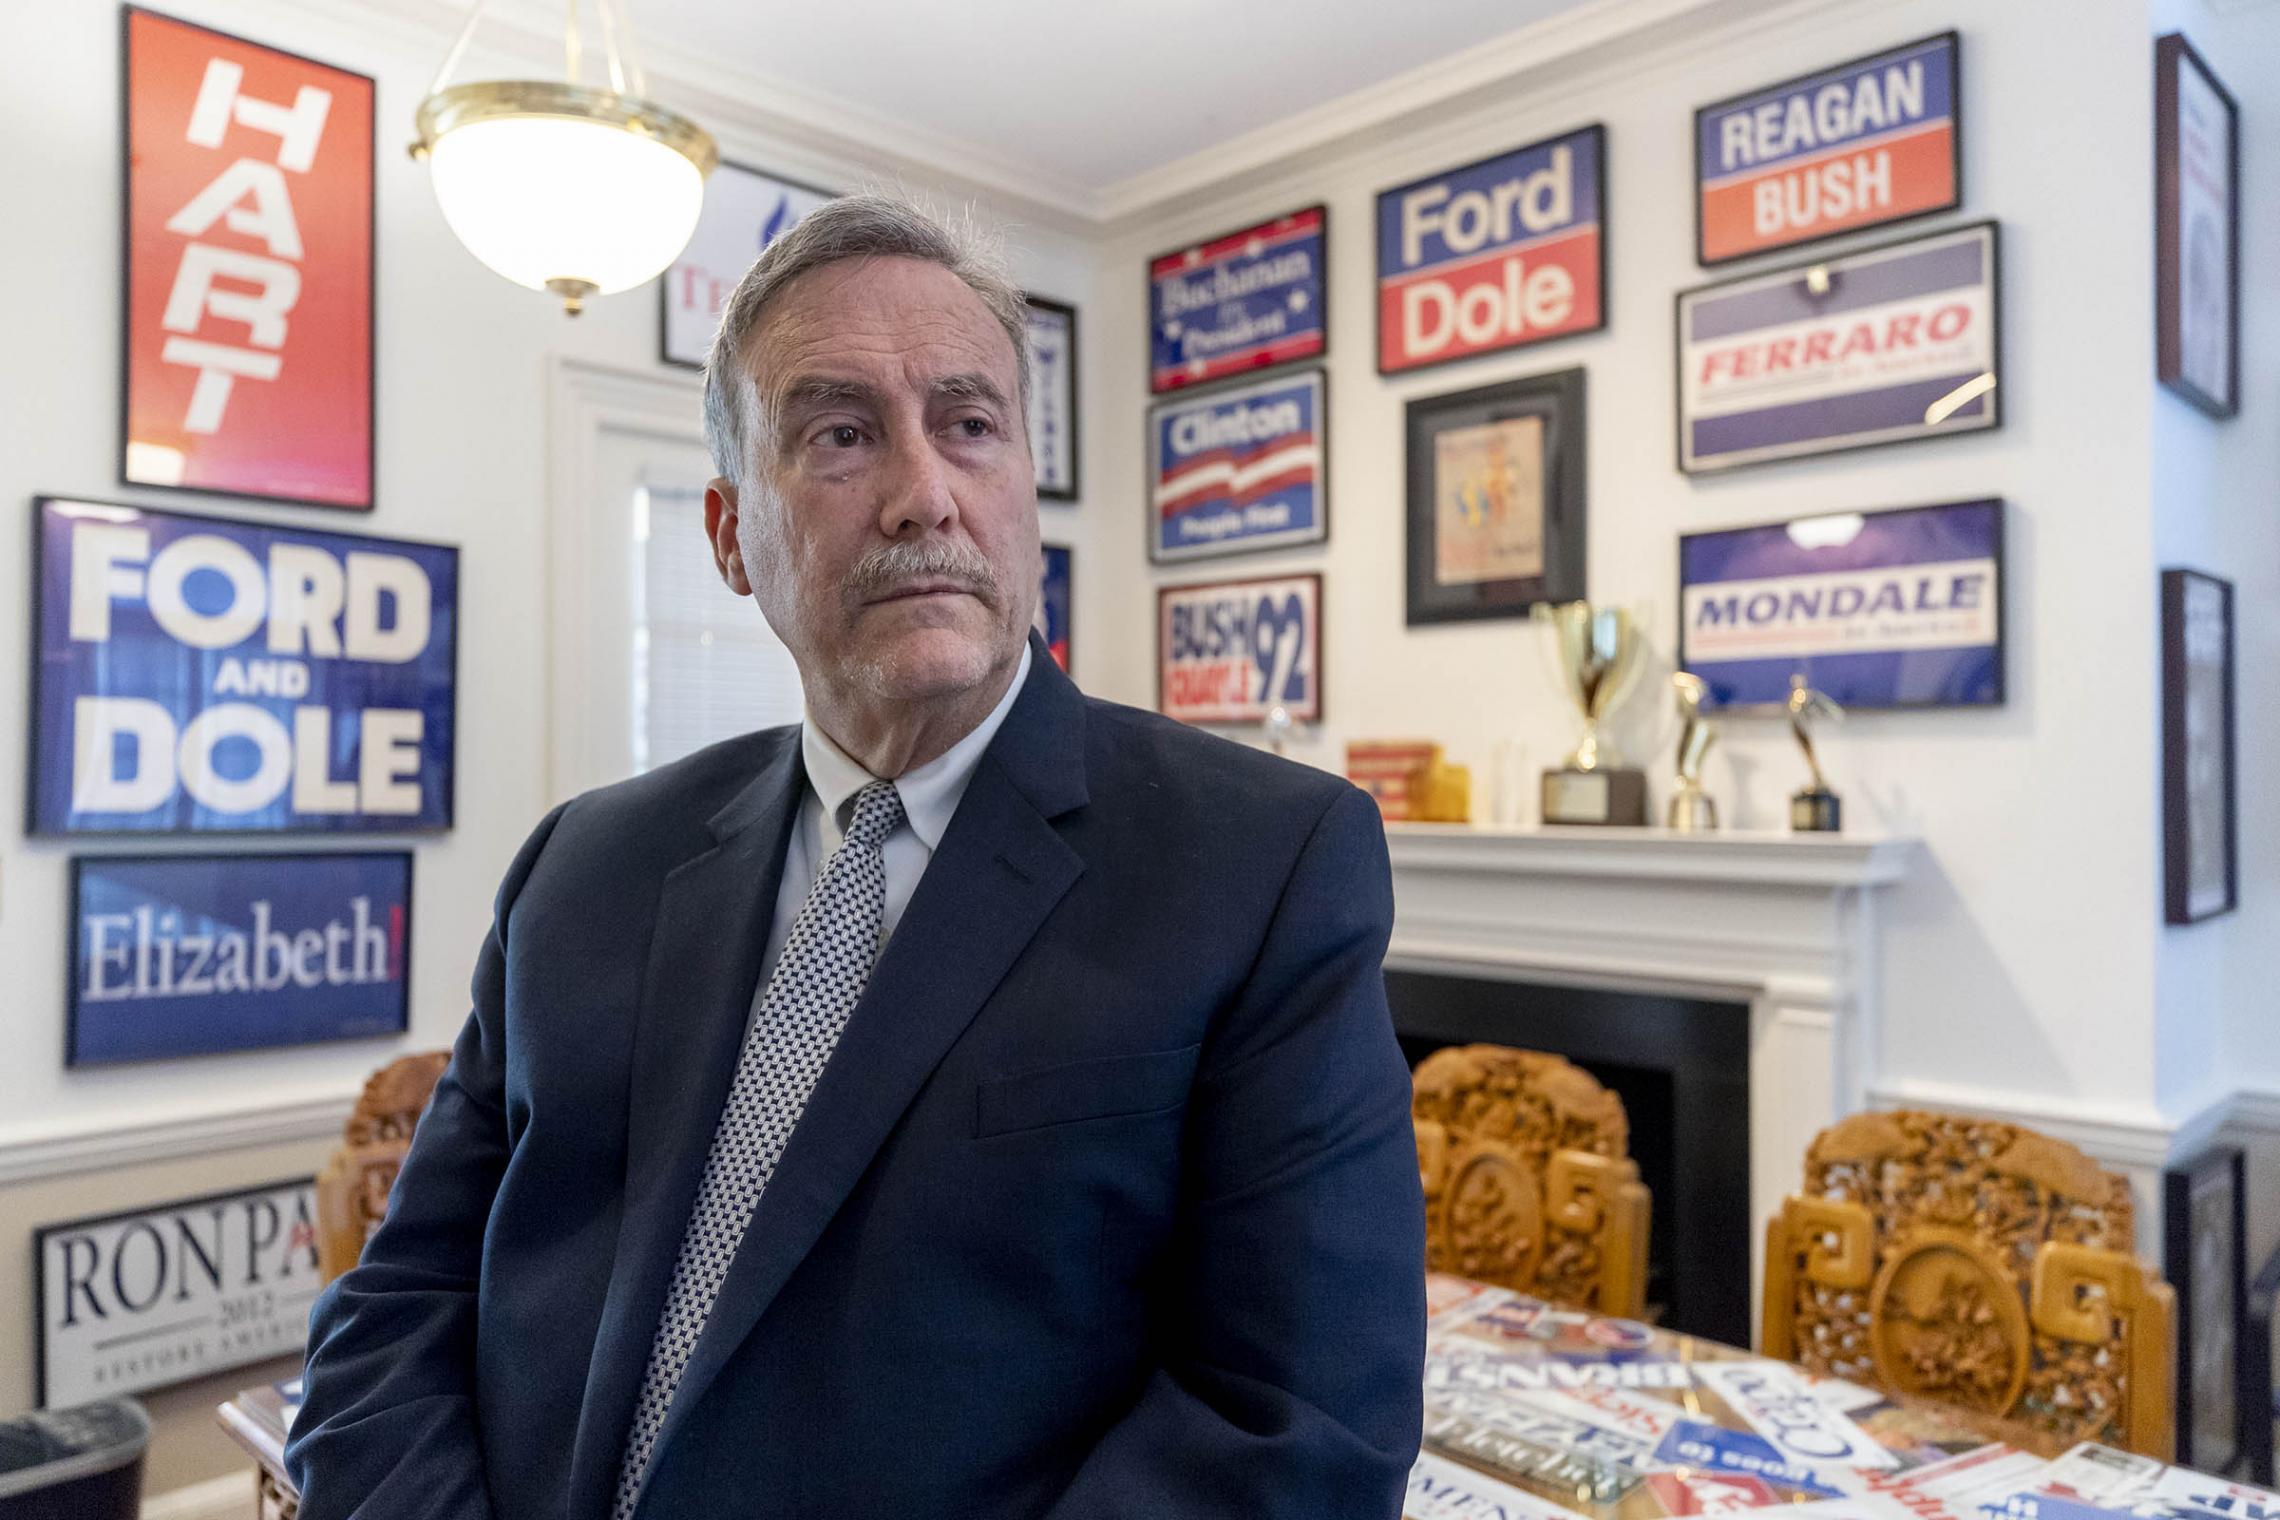 Larry Sabato, founder and director of UVA's Center for Politics, is known for his careful election analysis, both in the classroom and on national news networks.